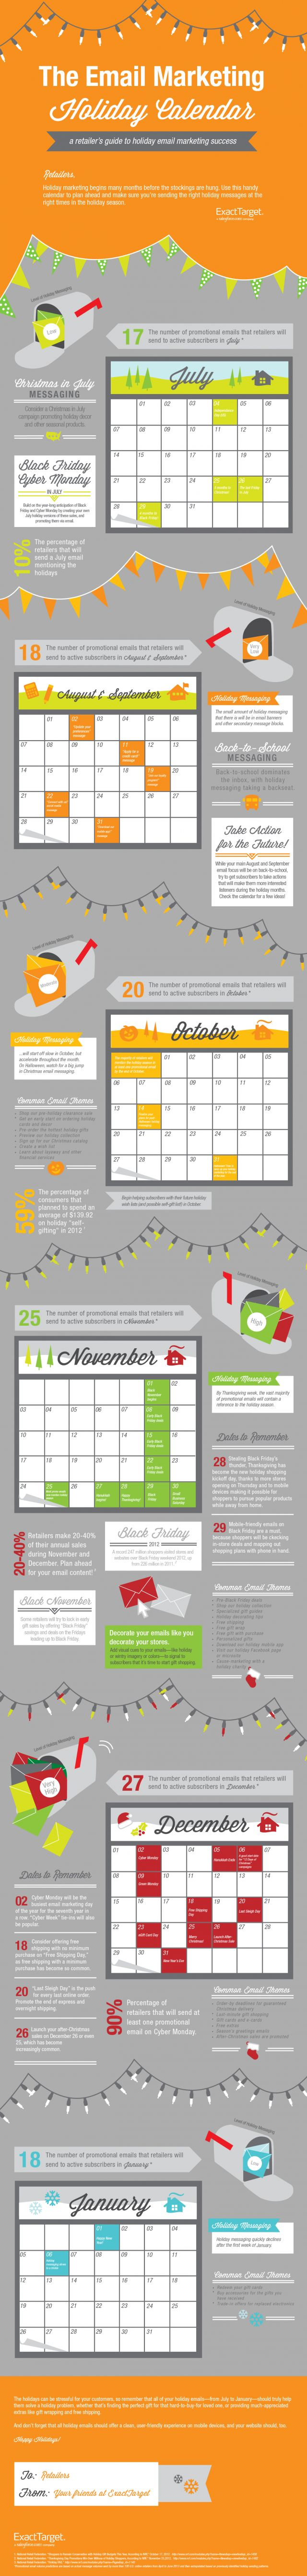 This email marketing holiday calendar infographic isn't just for retailers... it's the perfect cheat sheet for entrepreneurs, network marketers, MLM pros, direct sales people and small business owners!